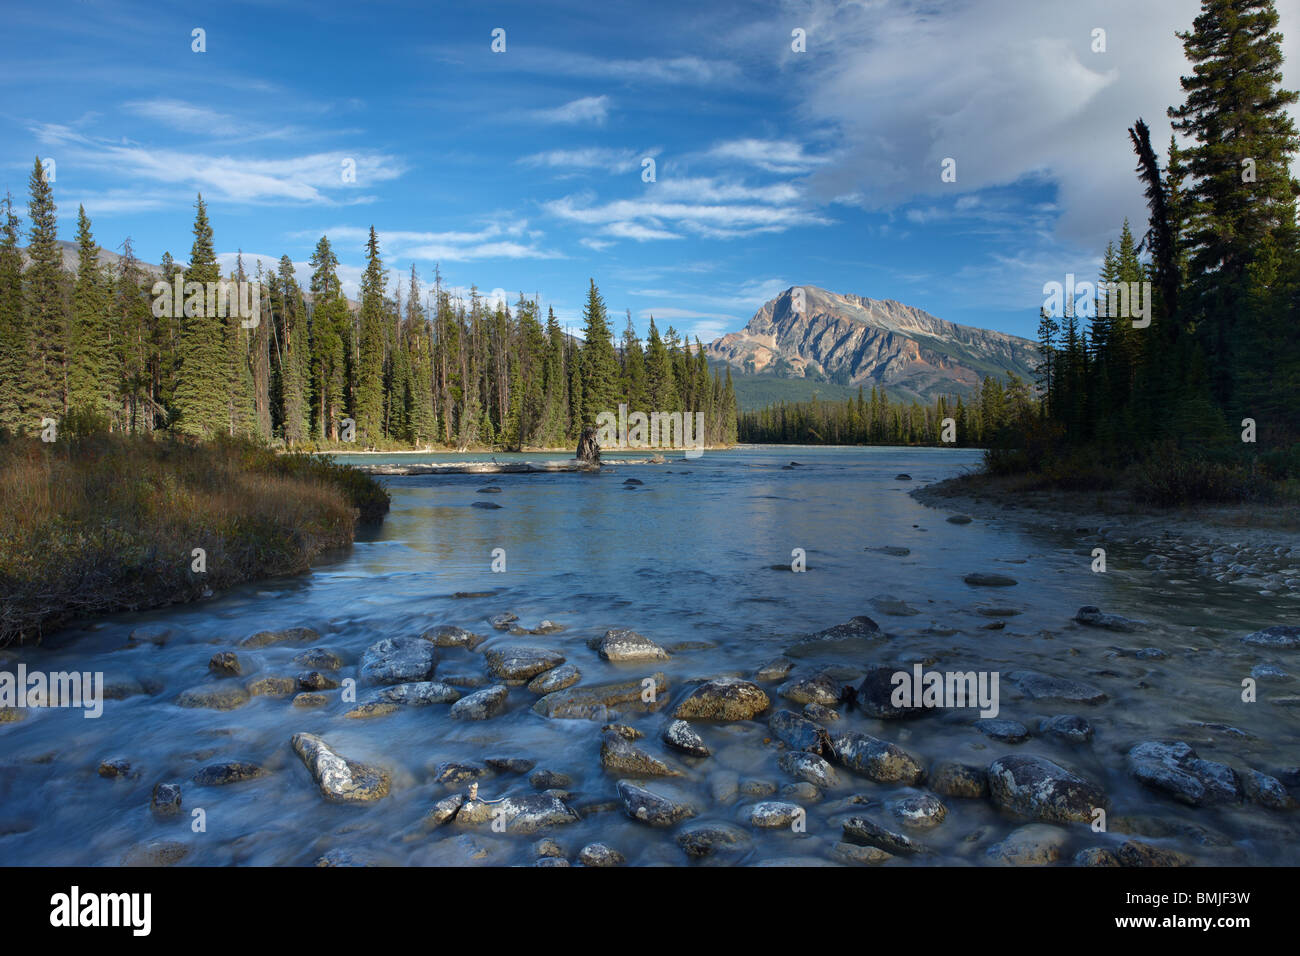 the Athabasca River at Otto's Cache, Jasper National Park, Alberta, Canada - Stock Image